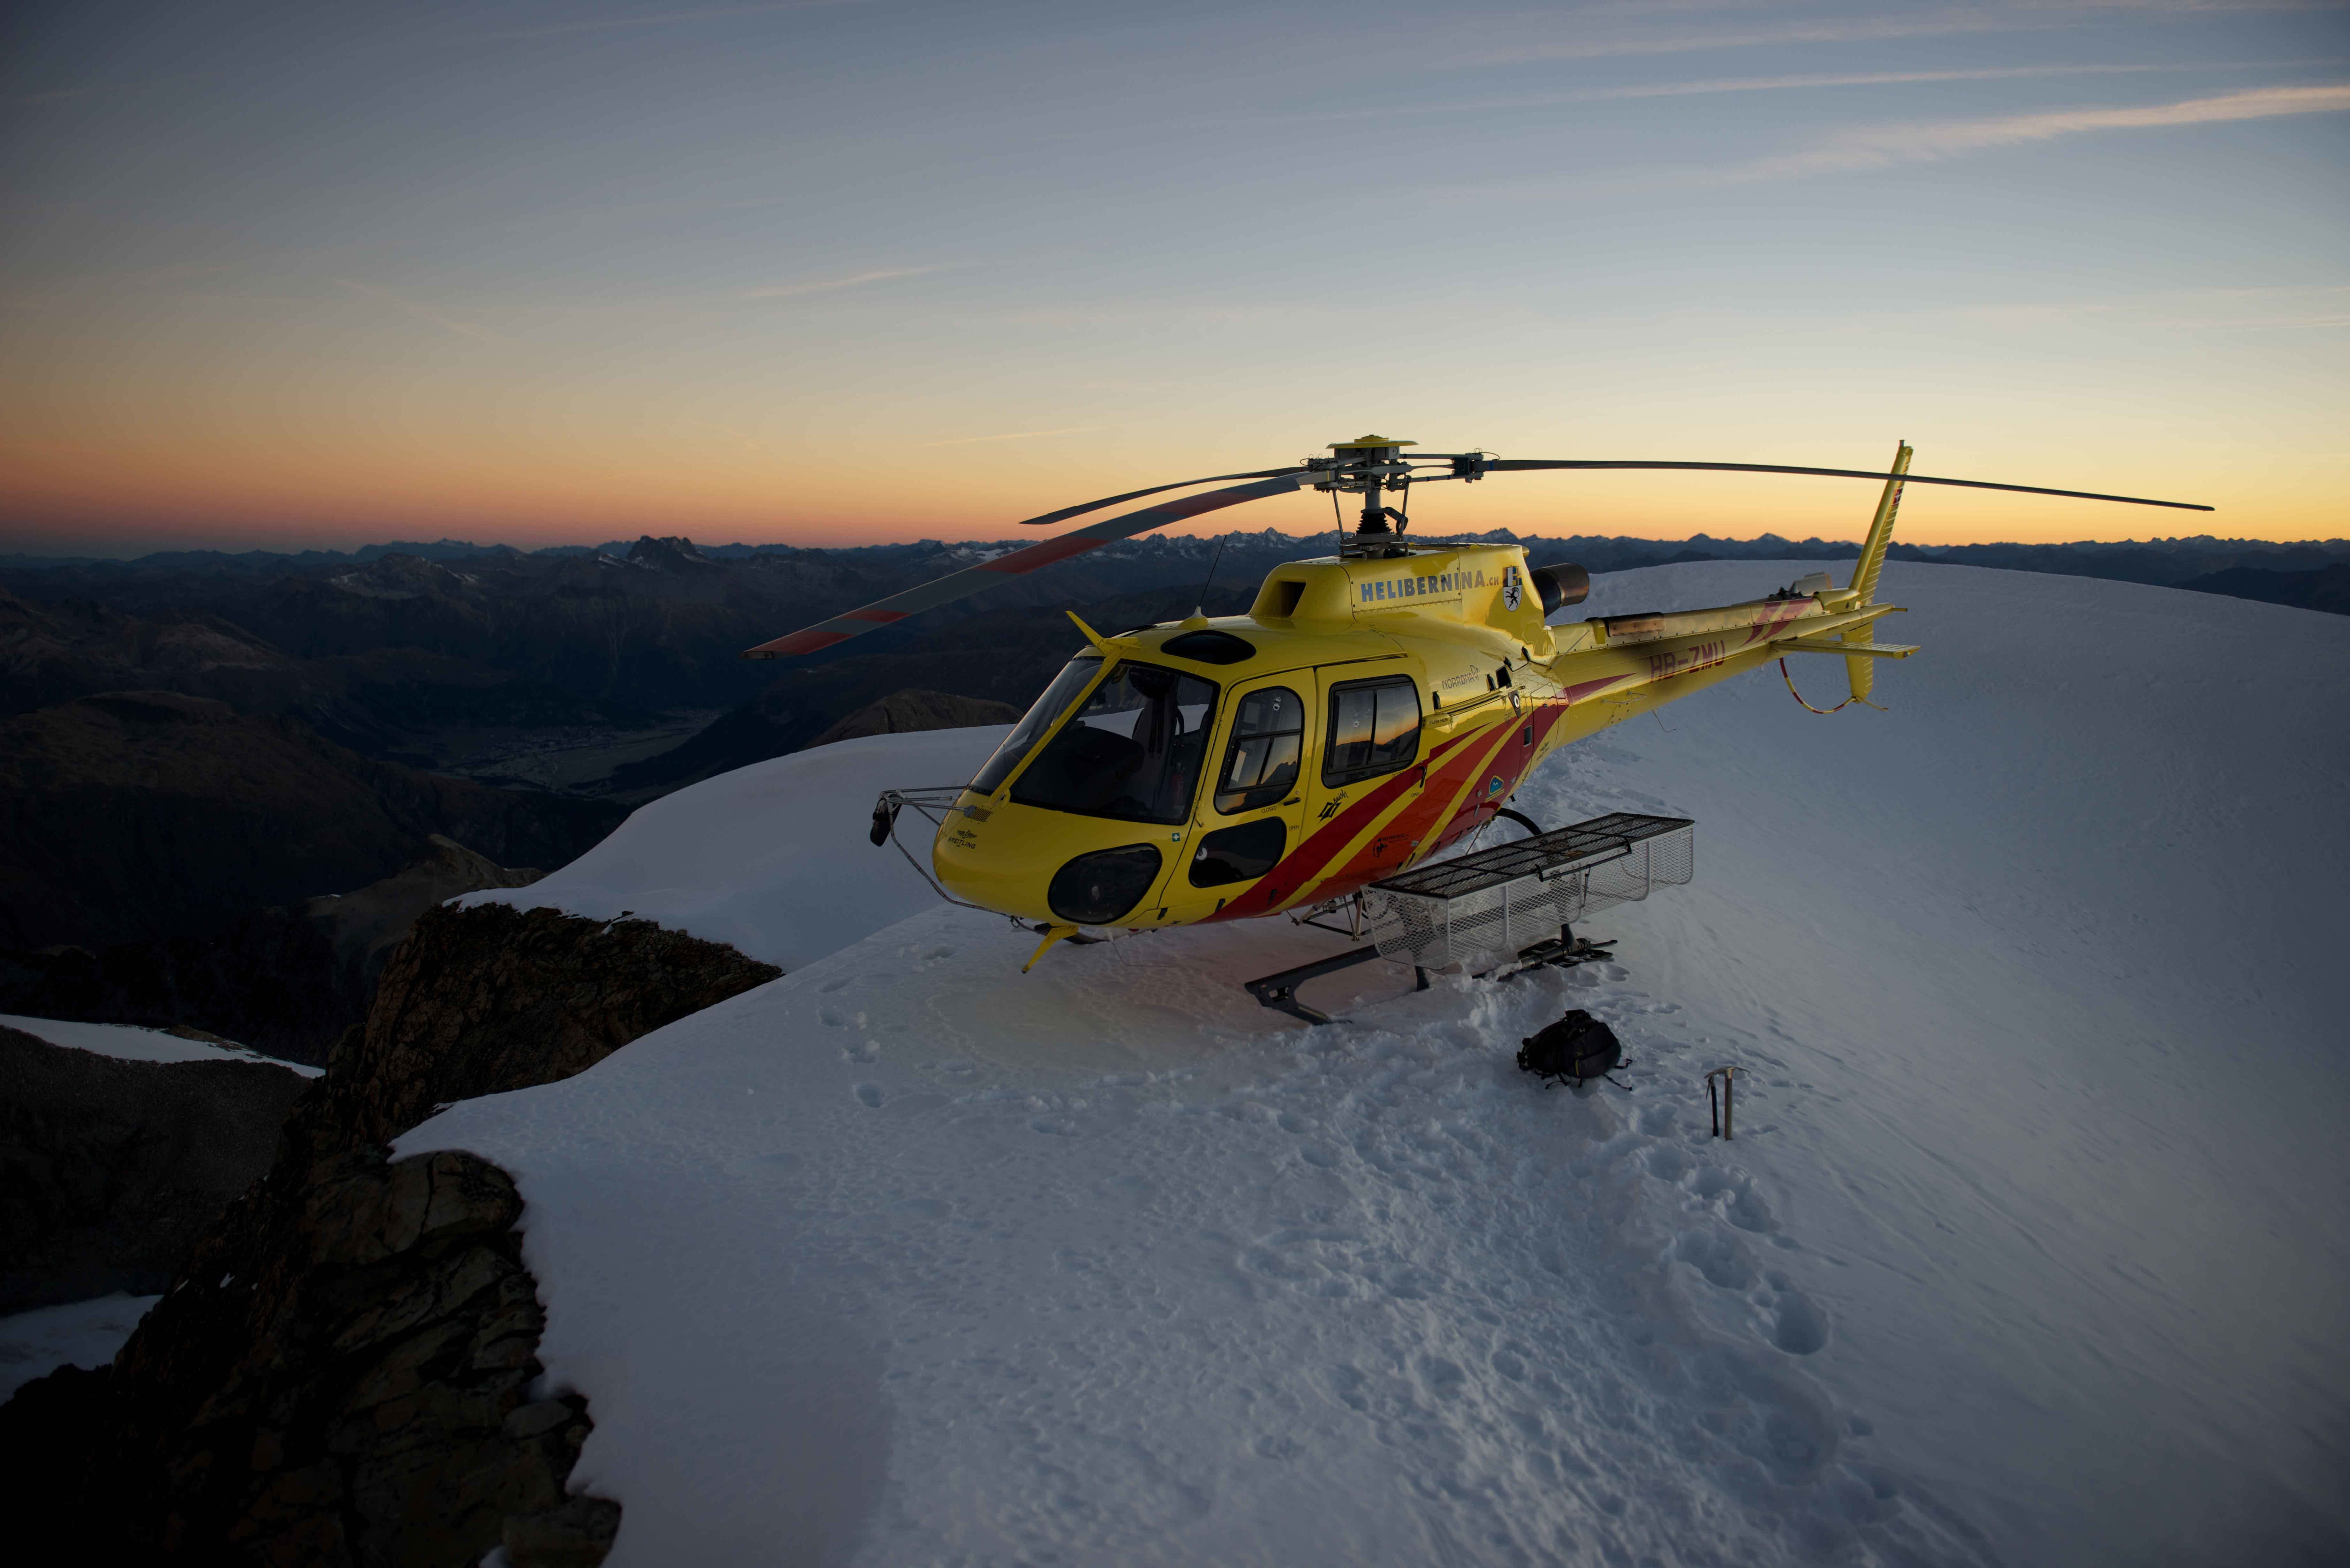 Heli Bernina